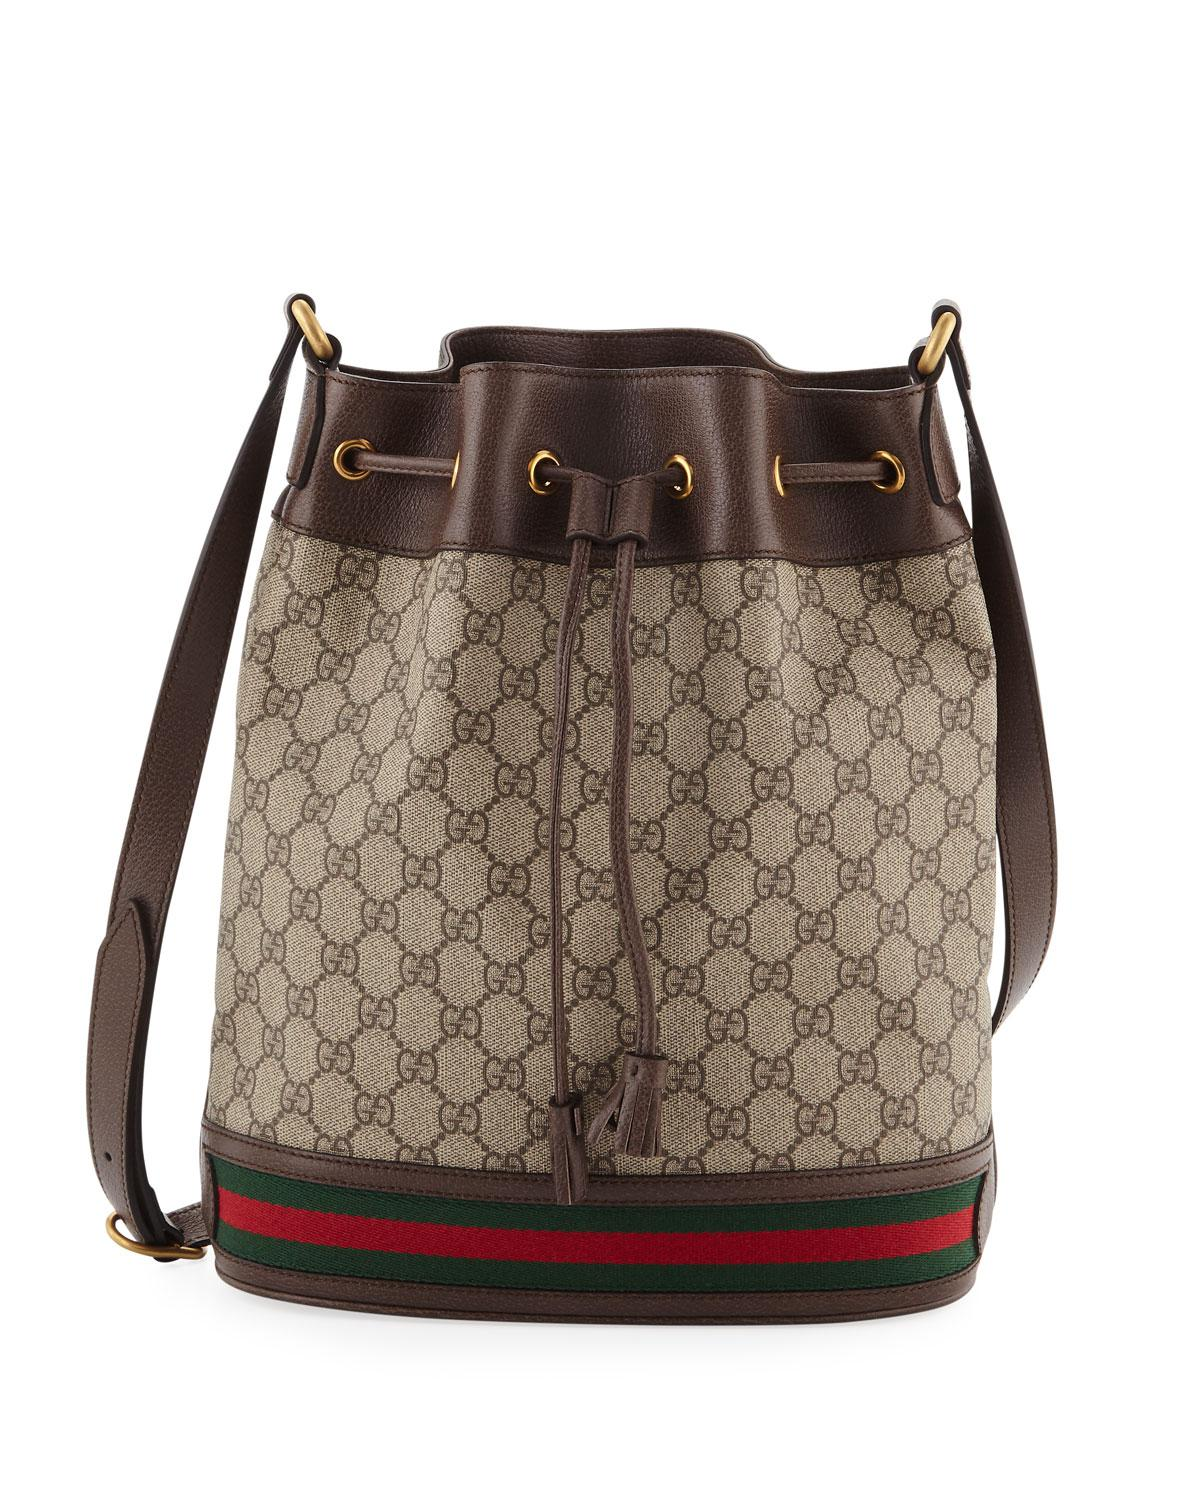 7d0fd5d0919d Gucci Ophidia GG Supreme Canvas Drawstring Bucket Bag in Natural - Lyst